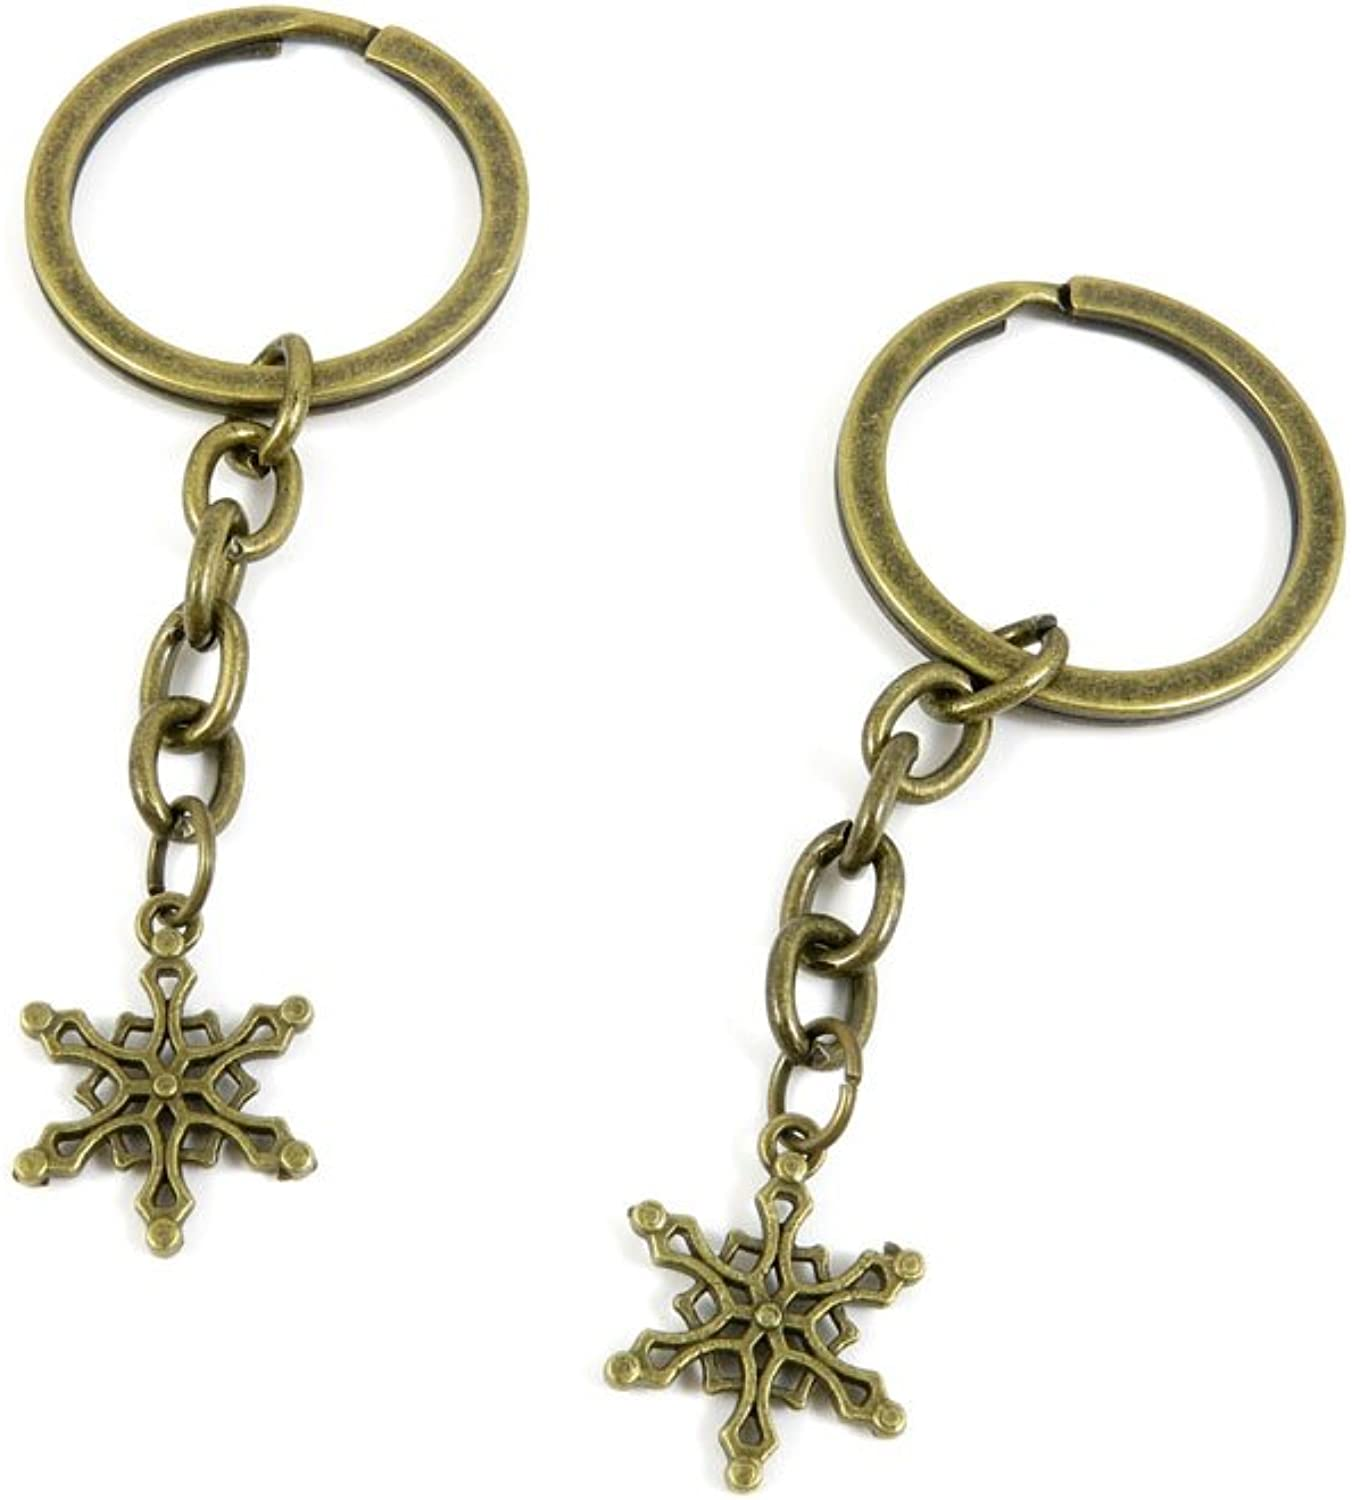 220 Pieces Fashion Jewelry Keyring Keychain Door Car Key Tag Ring Chain Supplier Supply Wholesale Bulk Lots K7WM4 Snowflake Snow Flake